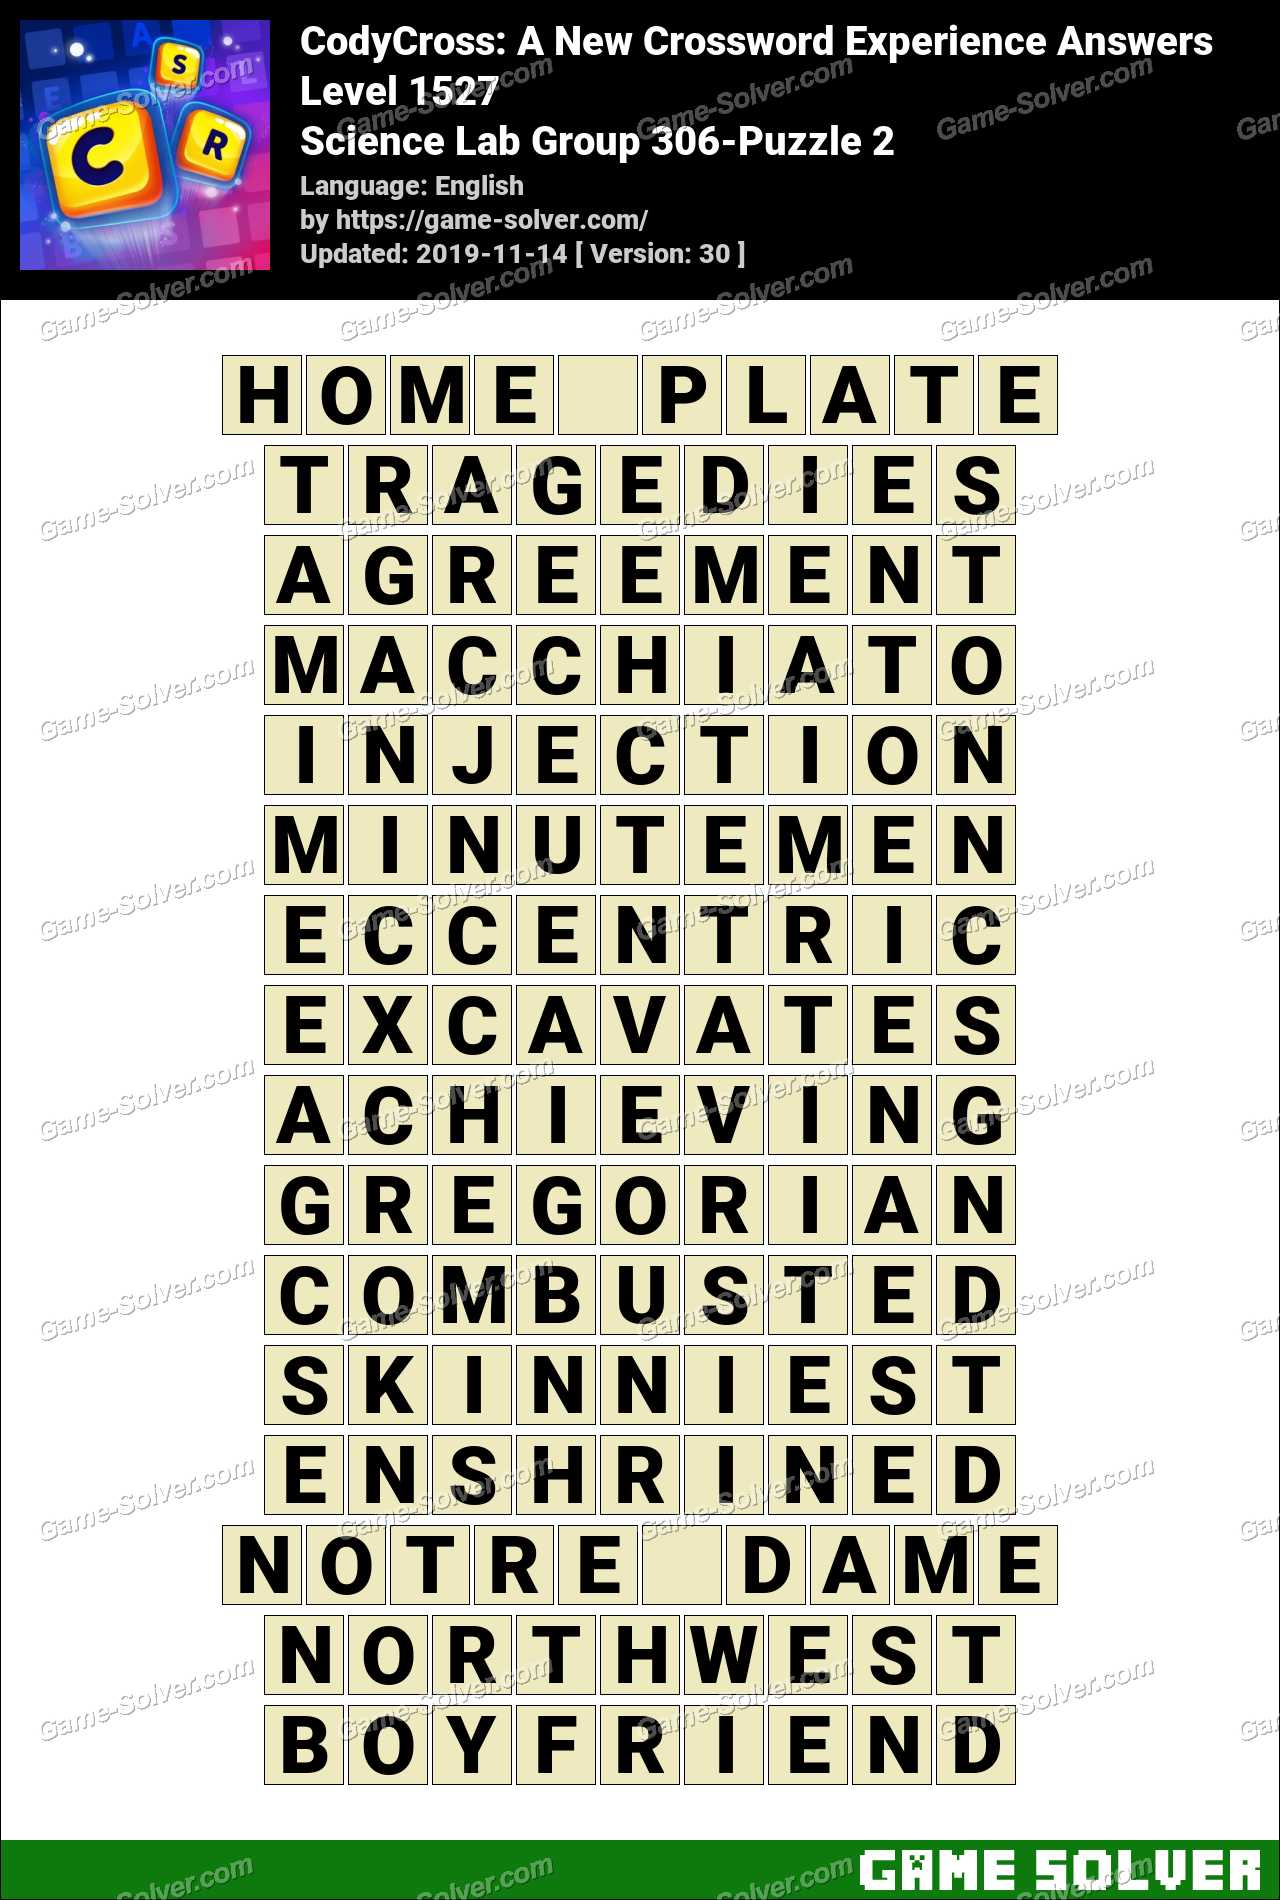 CodyCross Science Lab Group 306-Puzzle 2 Answers